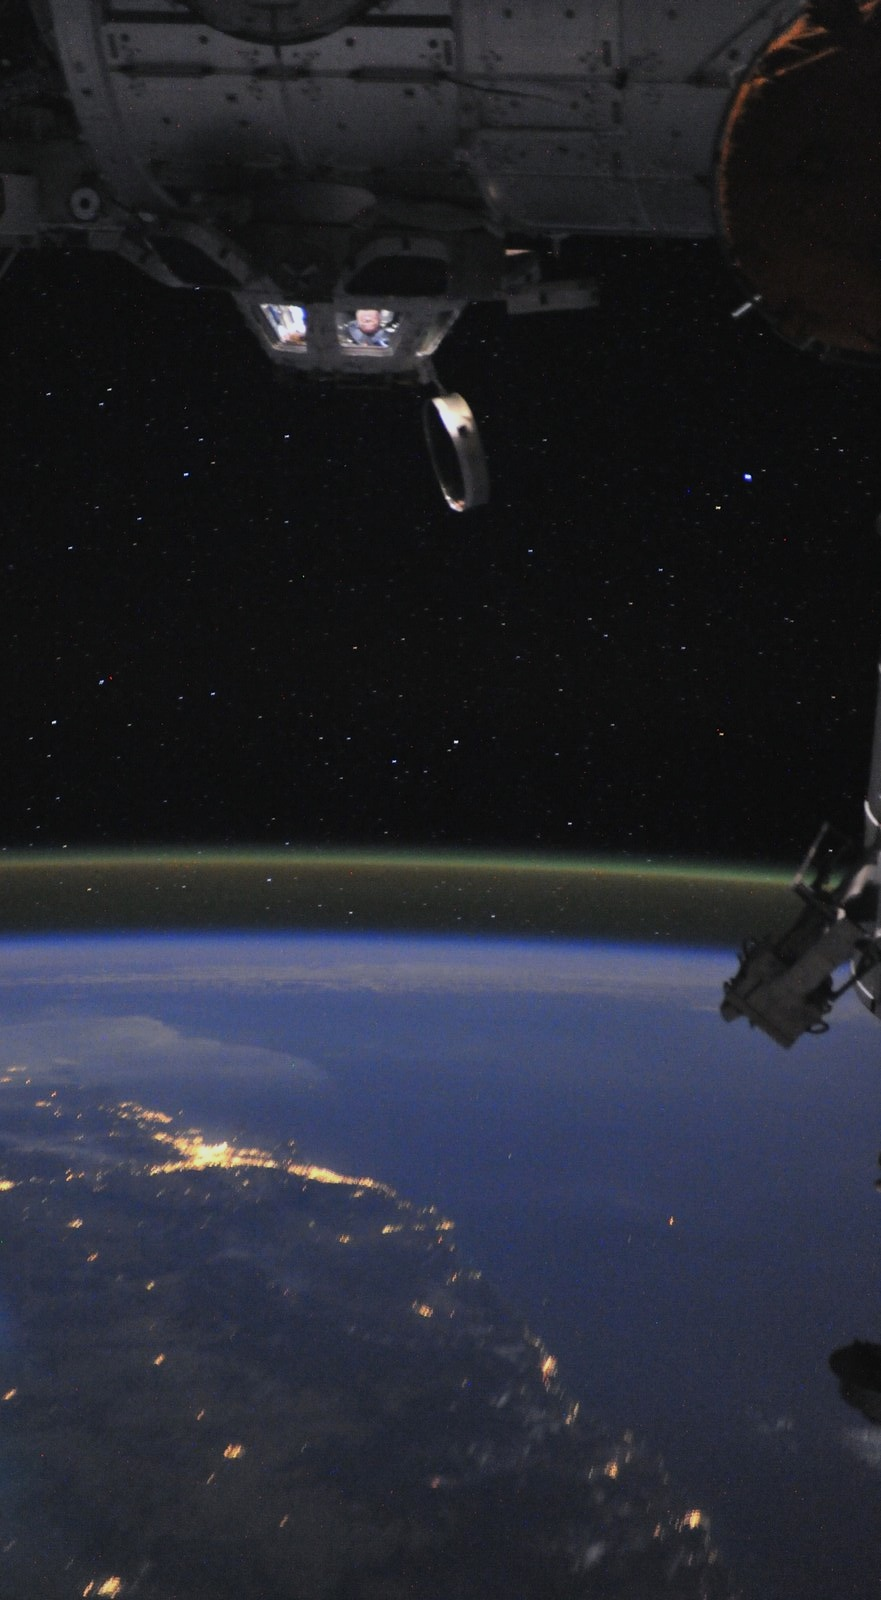 ISS astronaut Ron Garan peers out if the Station's cupola at the Earth below.